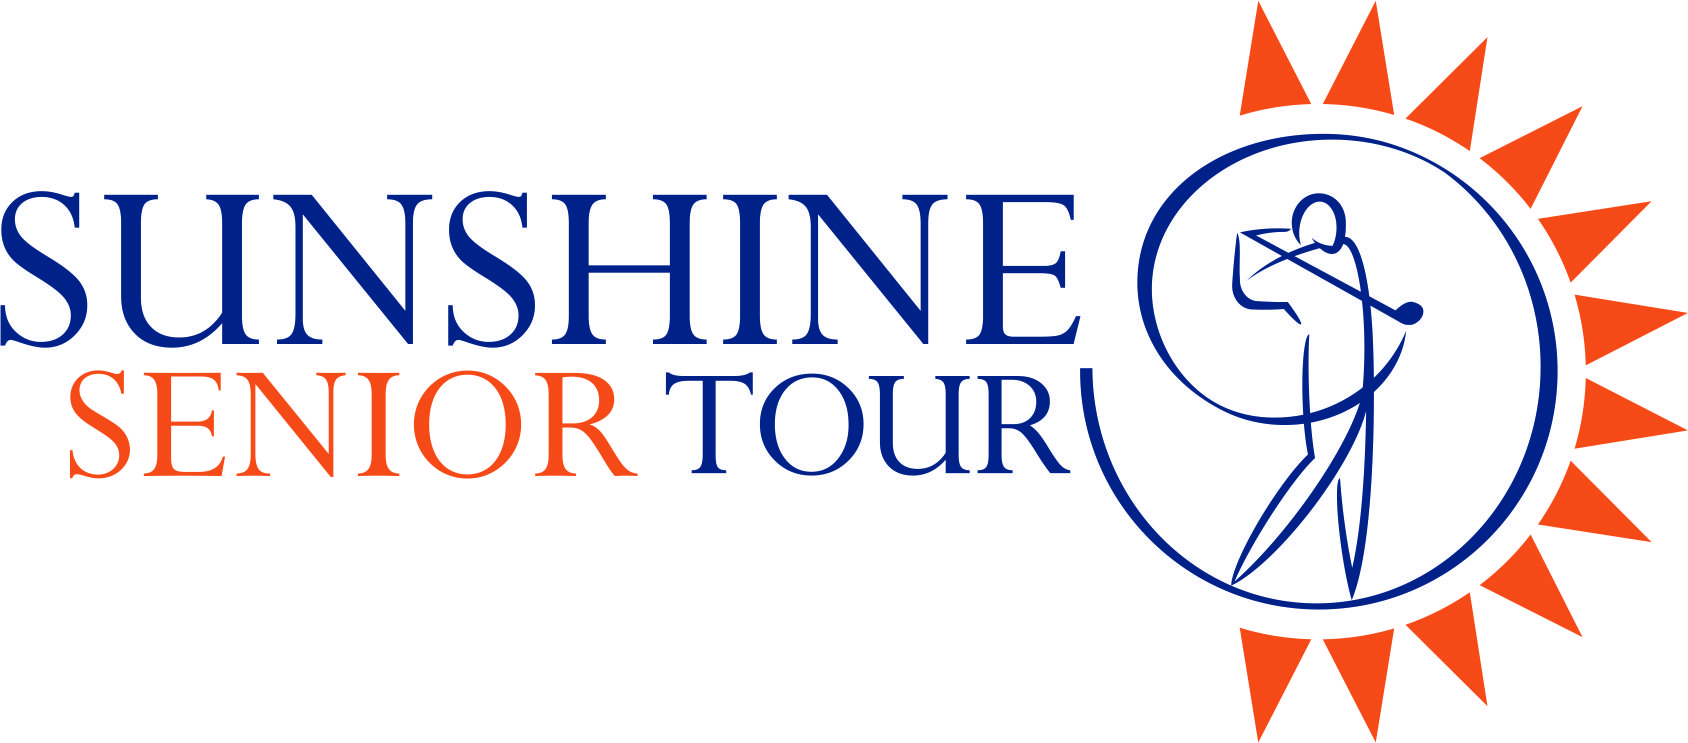 DATES SET FOR THE SUNSHINE SENIOR TOUR'S FLAGSHIP EVENT IN PLETTENBERG BAY